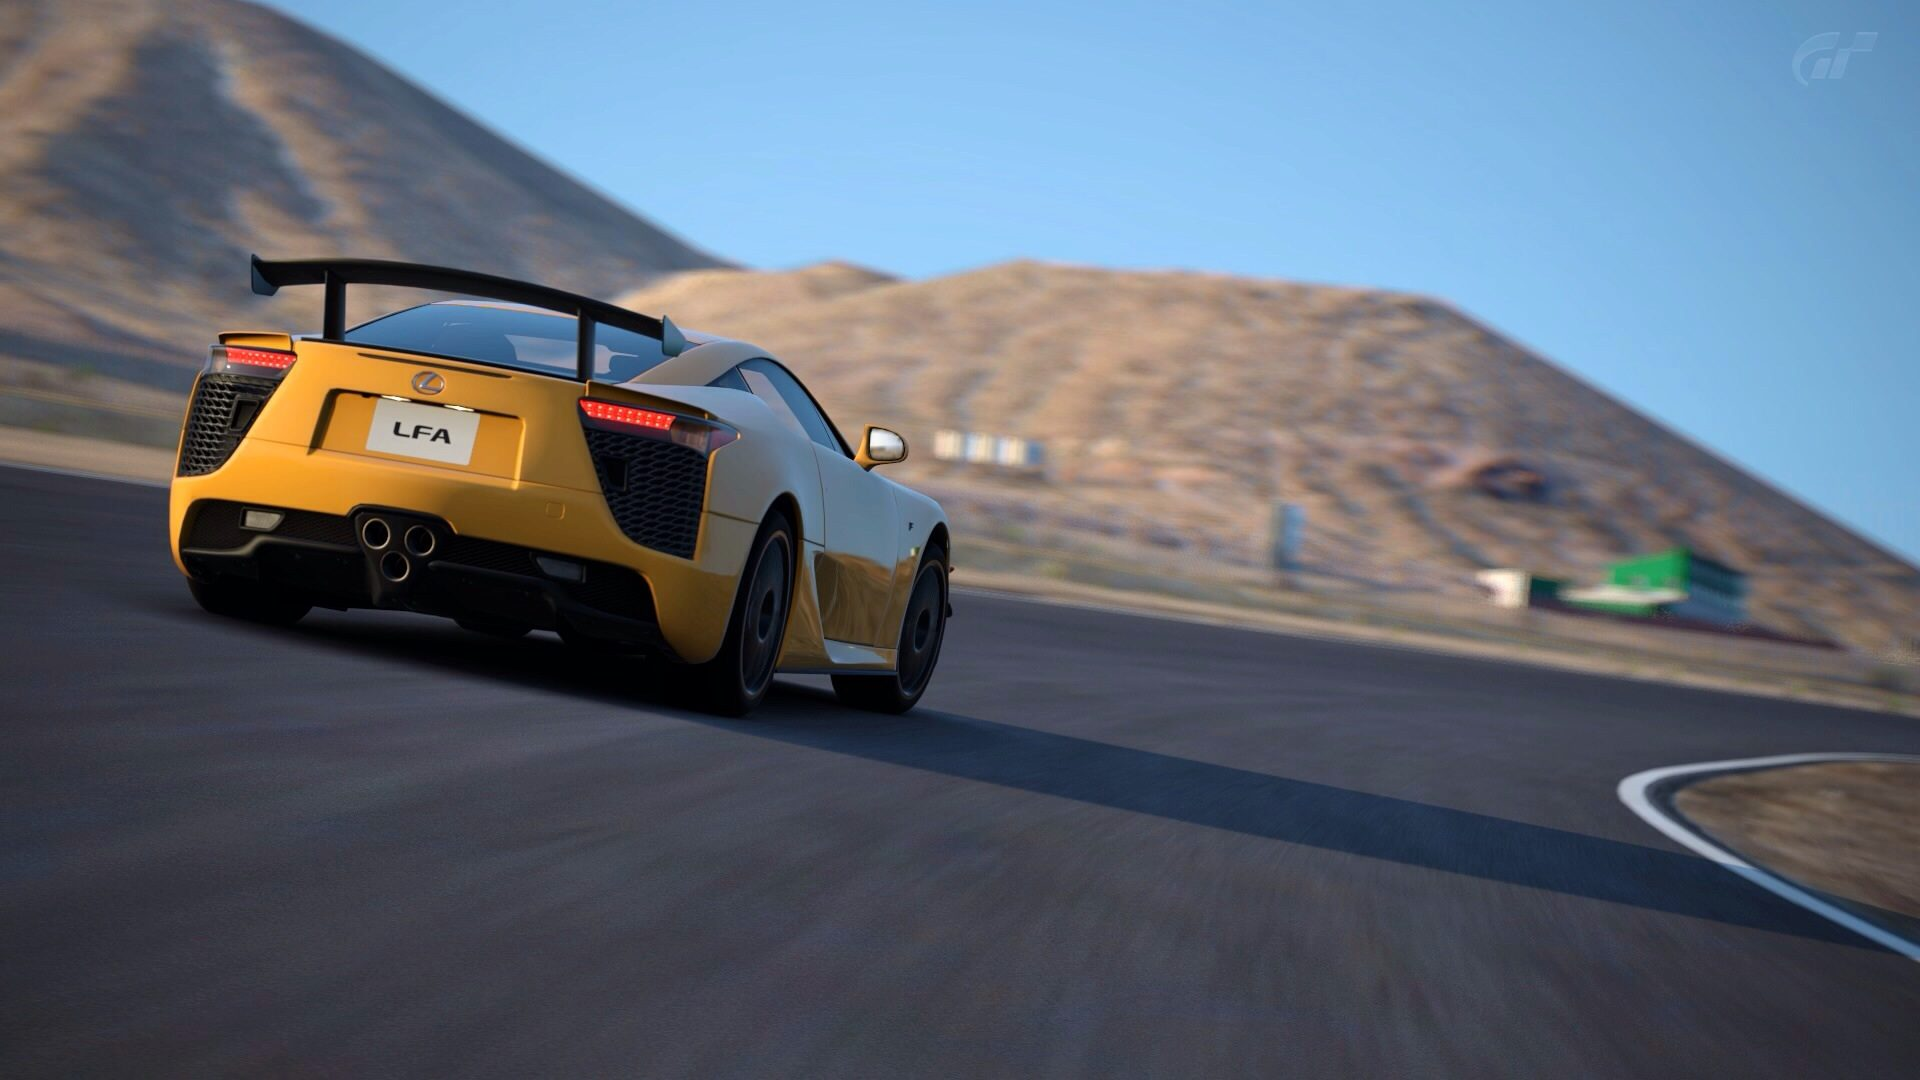 LFA Nurburgring Ed. Willow Springs (1).jpg